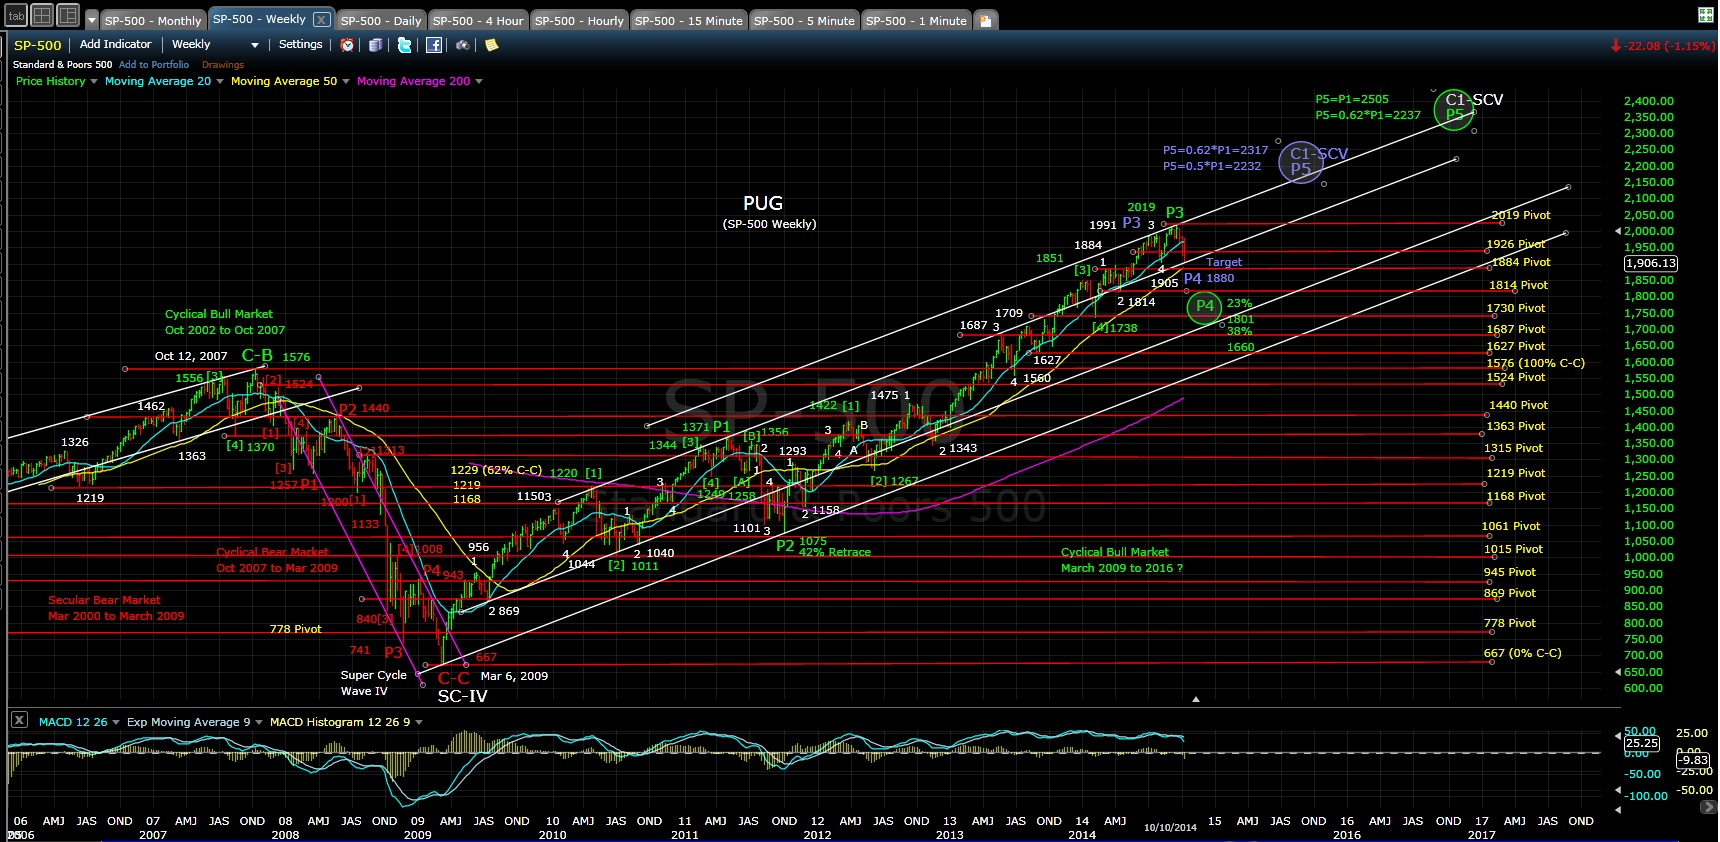 SP-500 weekly chart EOD 10-10-14